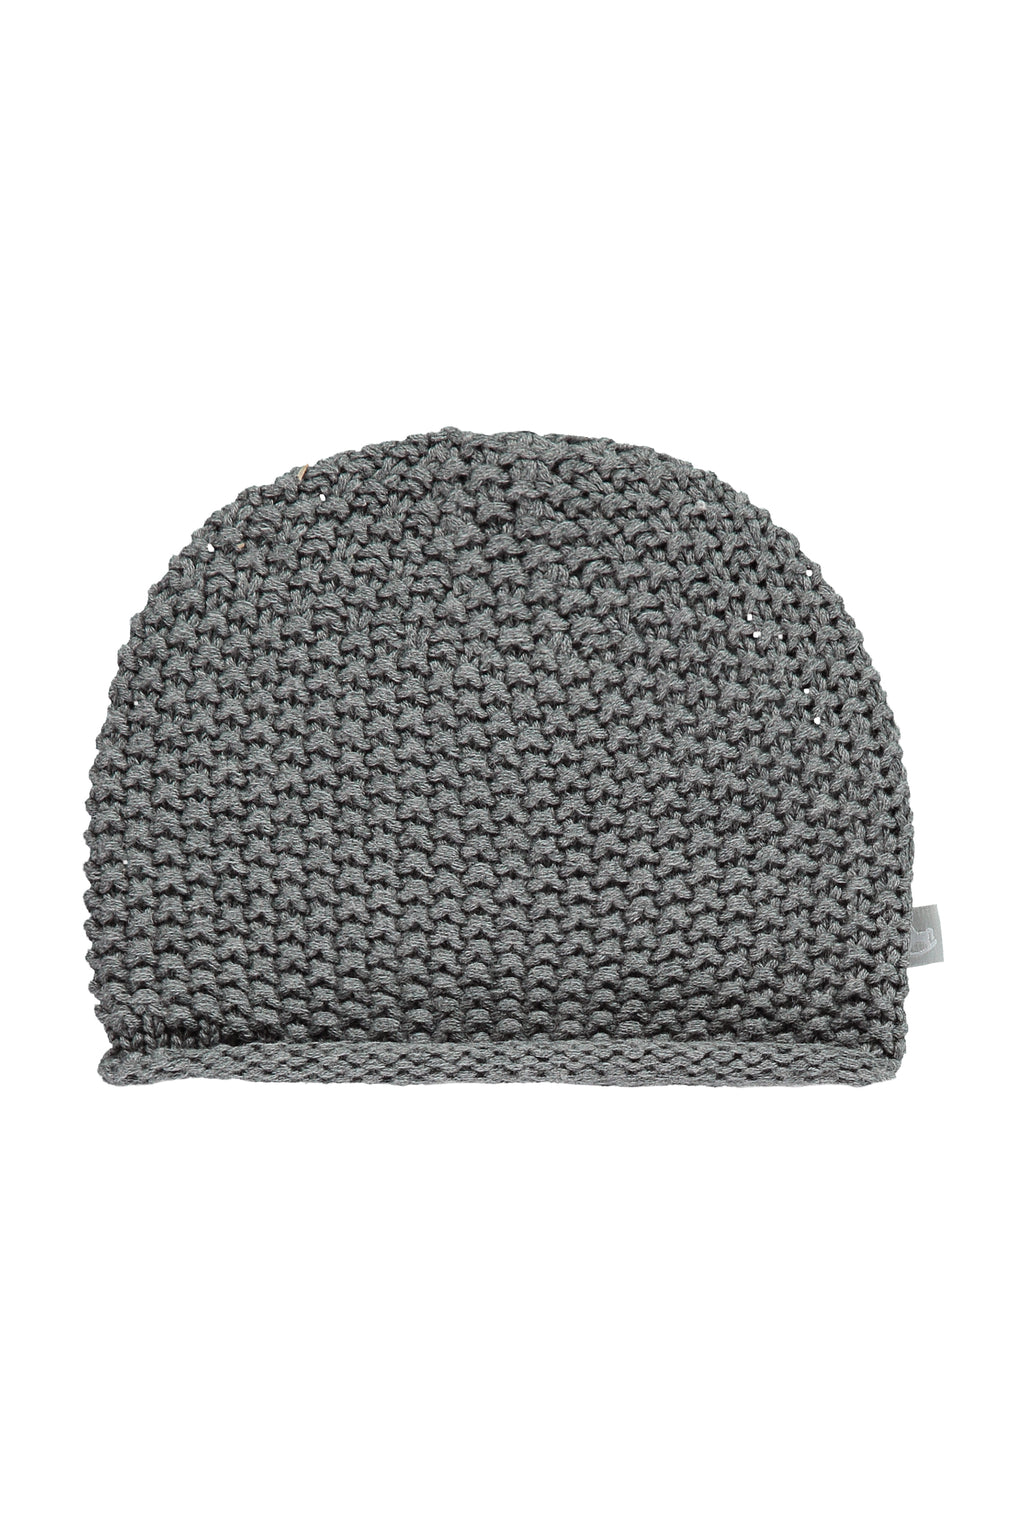 Charcoal Cotton Knitted Hat